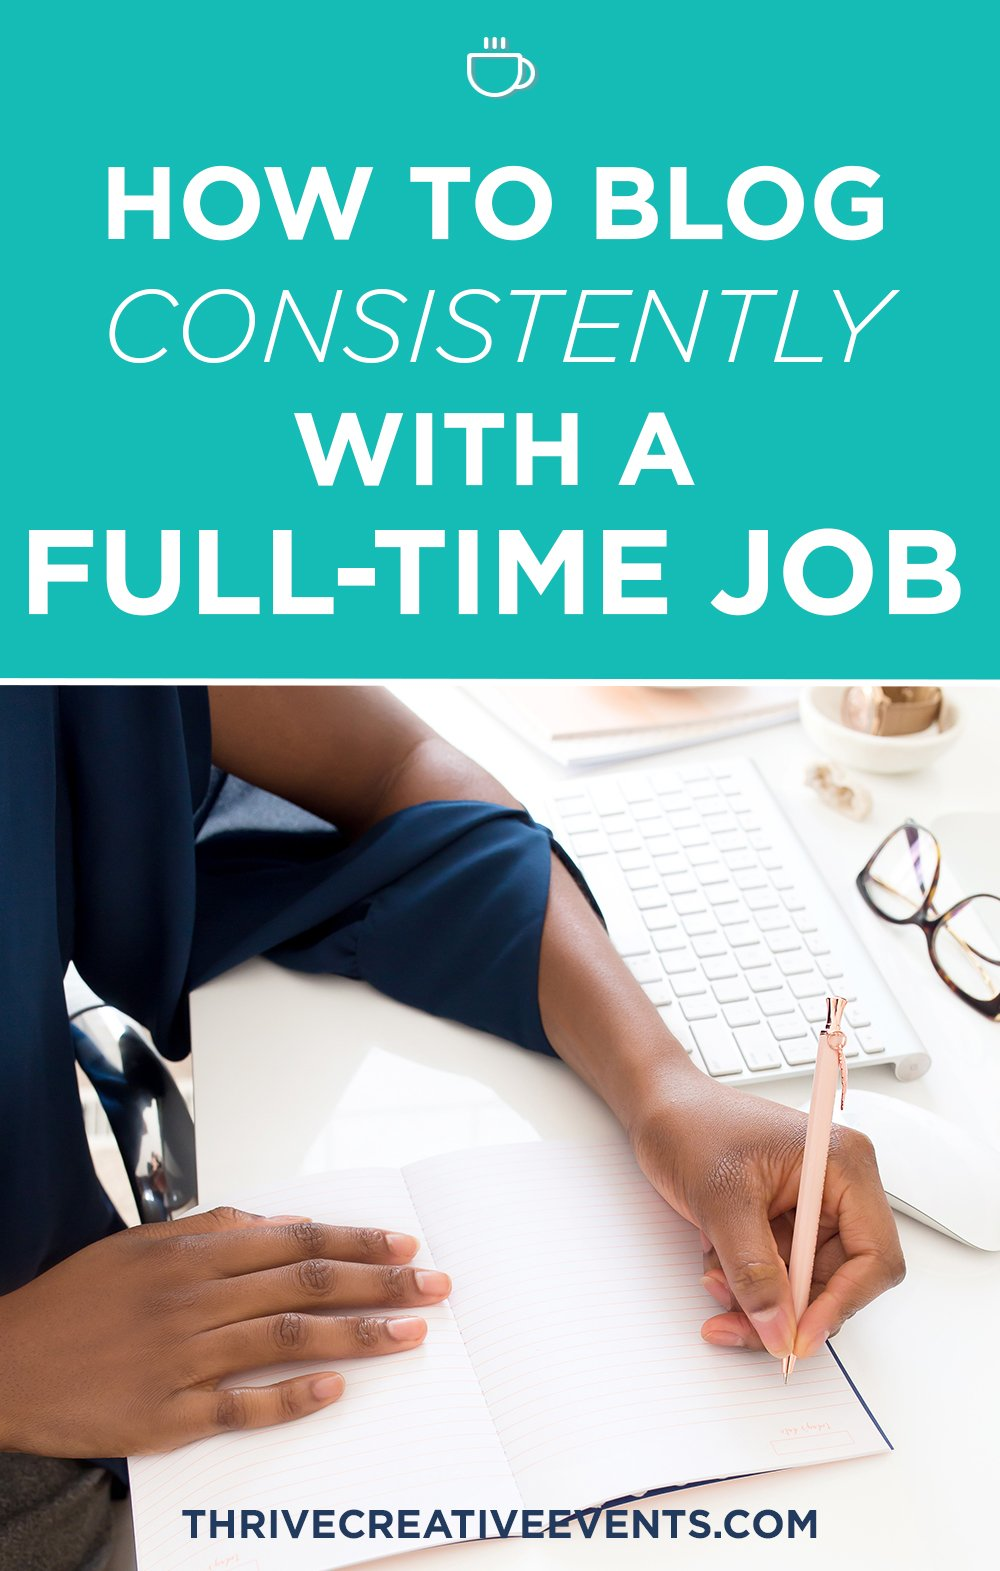 how-to-blog-consistently-with-a-full-time-job